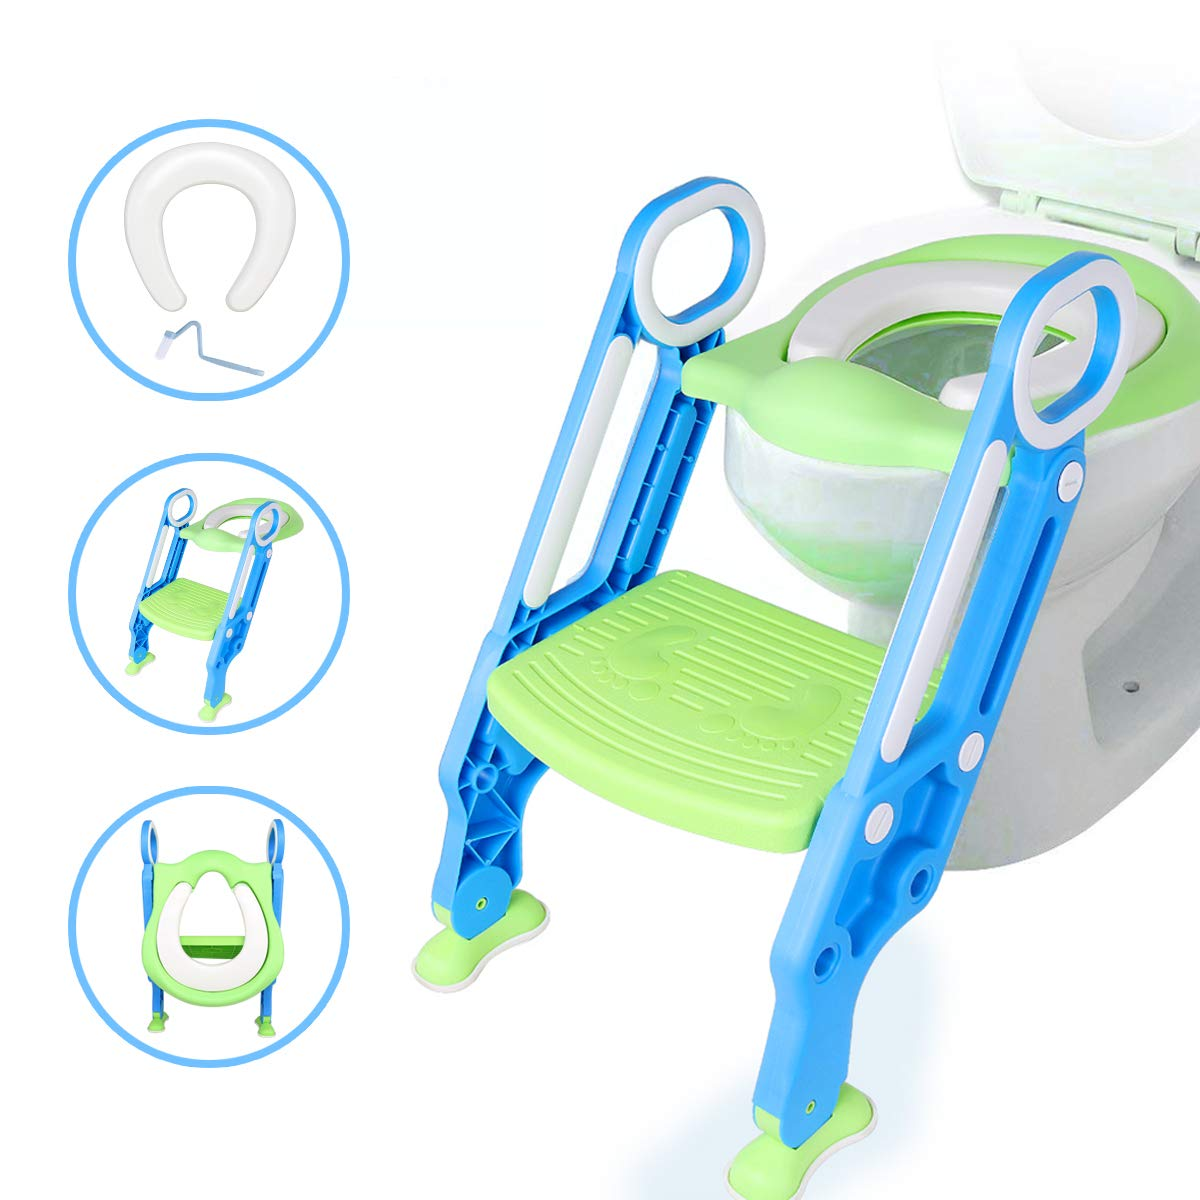 Potty Ladder, Potty Training Seat with Step Stool Ladder, Toddler Toilet Trainer, Adjustable Foot Step Splash Guard Toilet Ladder for Kids Boys and Girls Qotone